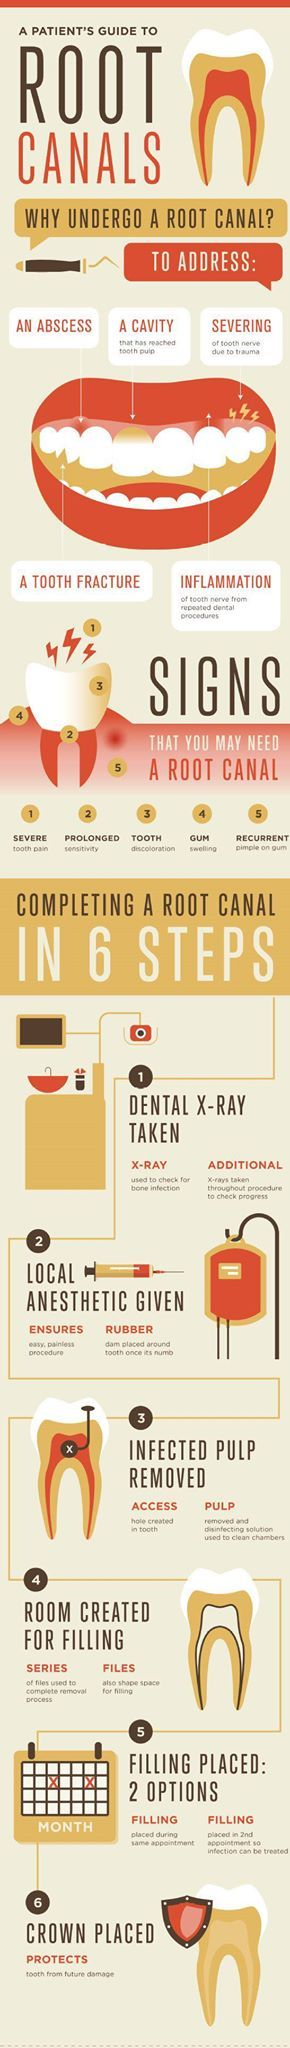 If a tooth's nerve is inflamed after repeated dental procedures, root canal treatment may be necessary to provide relief.